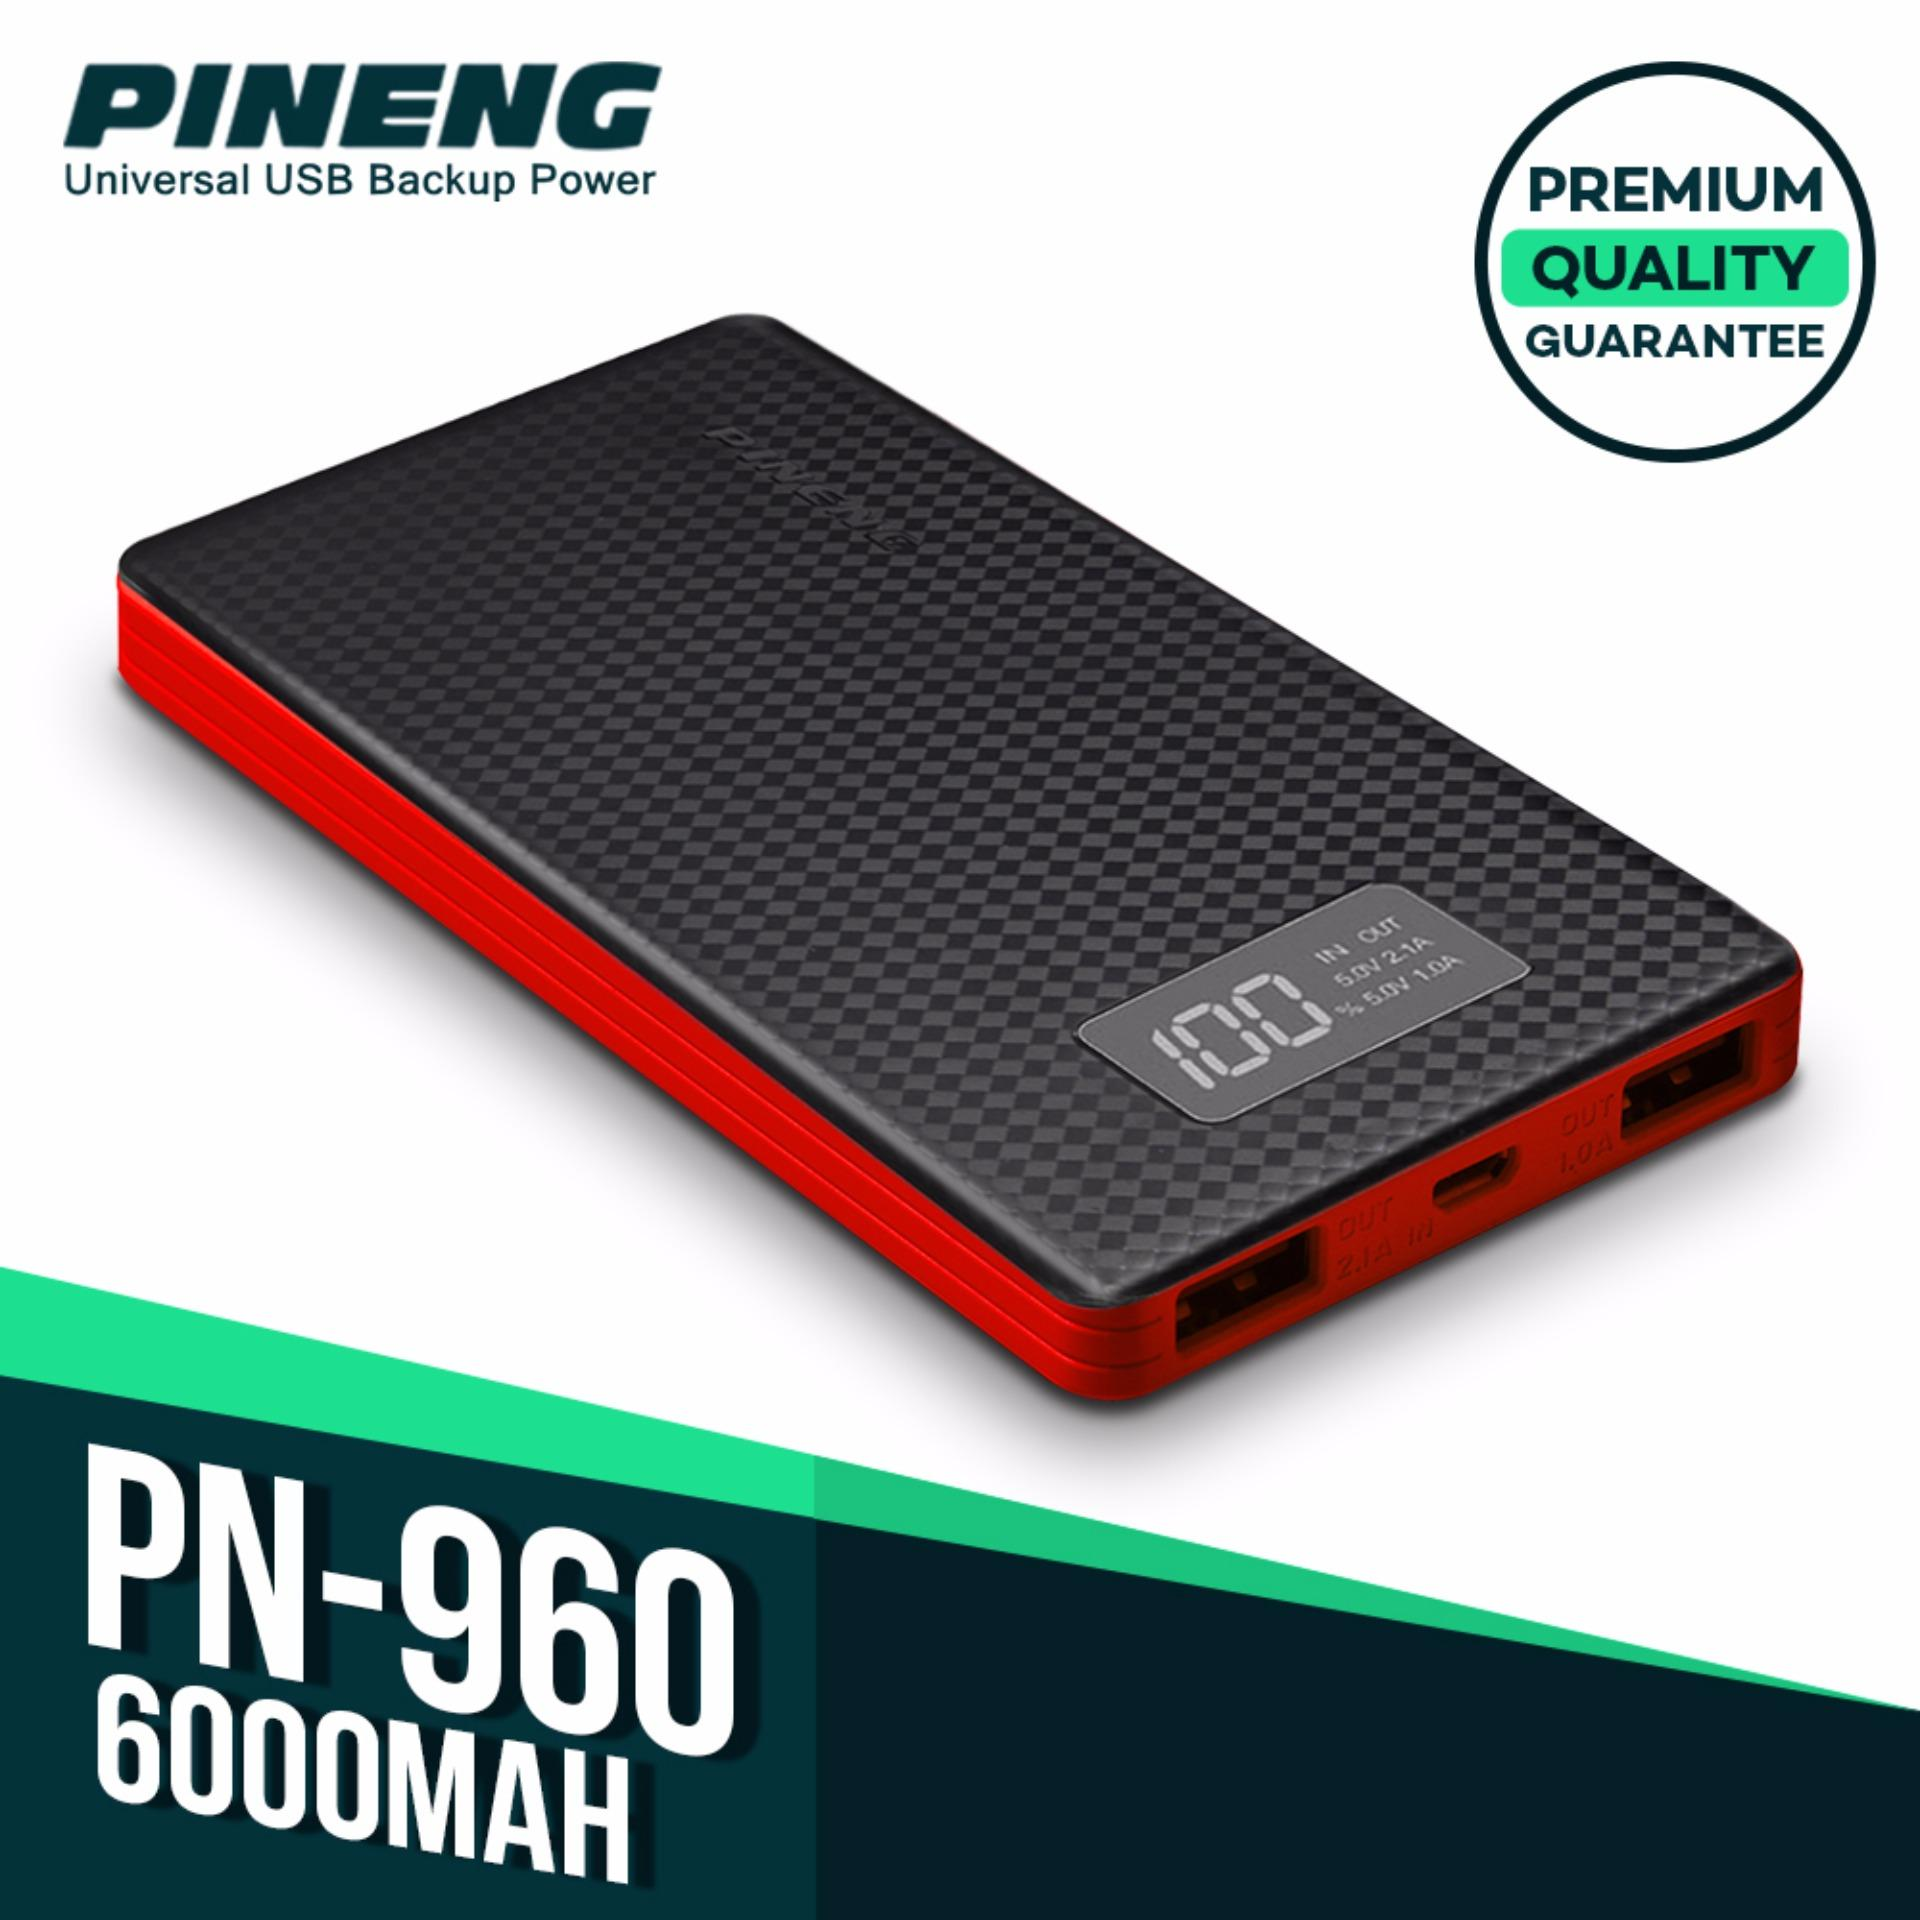 Pineng PN-960 6000mah Powerbank (Black/Red) product preview, discount at cheapest price